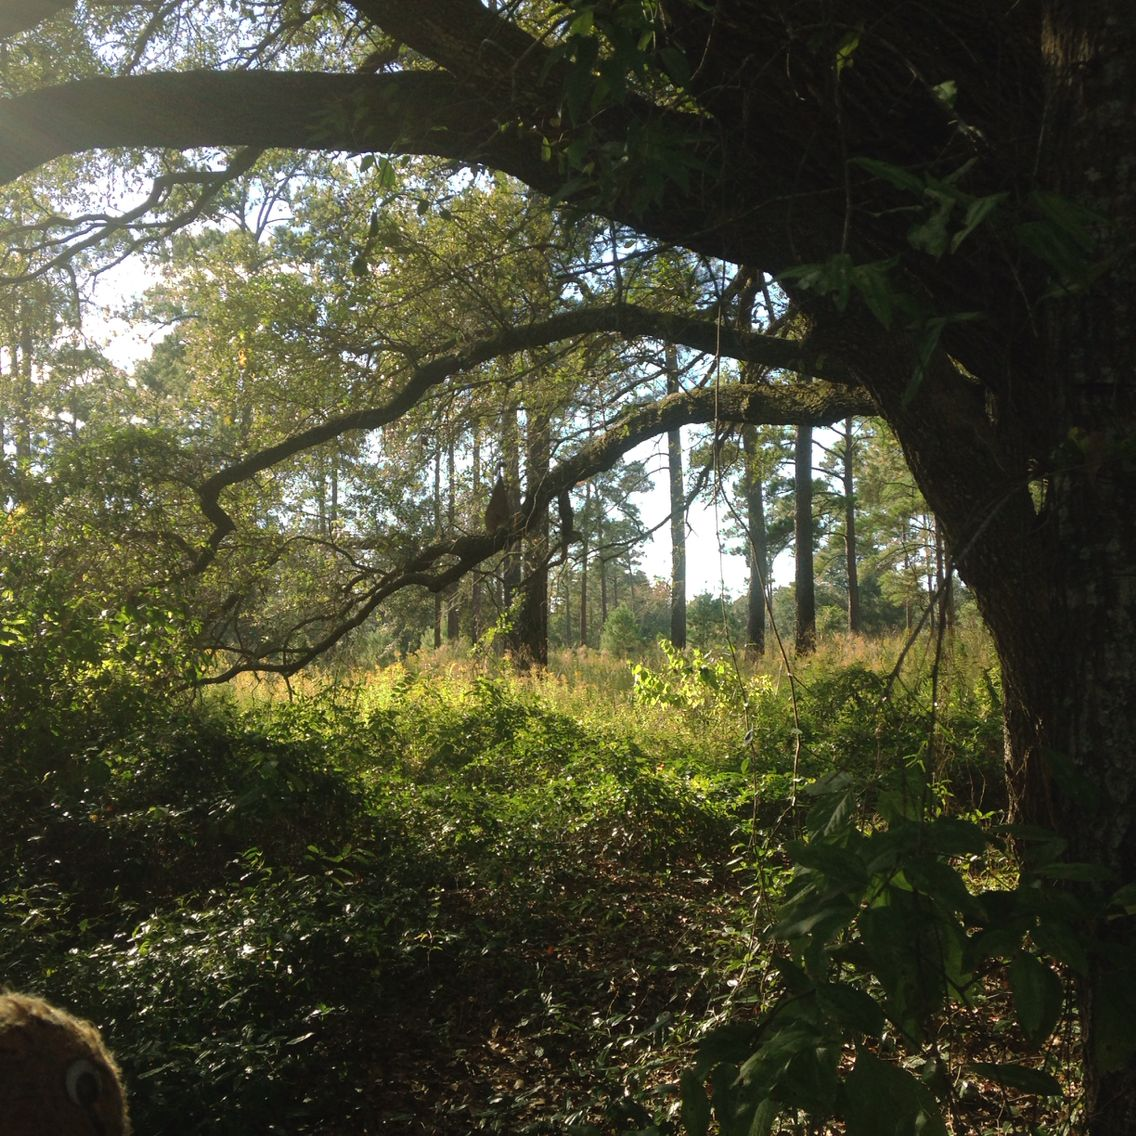 Swampy's #Florida Live: a walk in the woods near Greenville up here in the Panhandle.